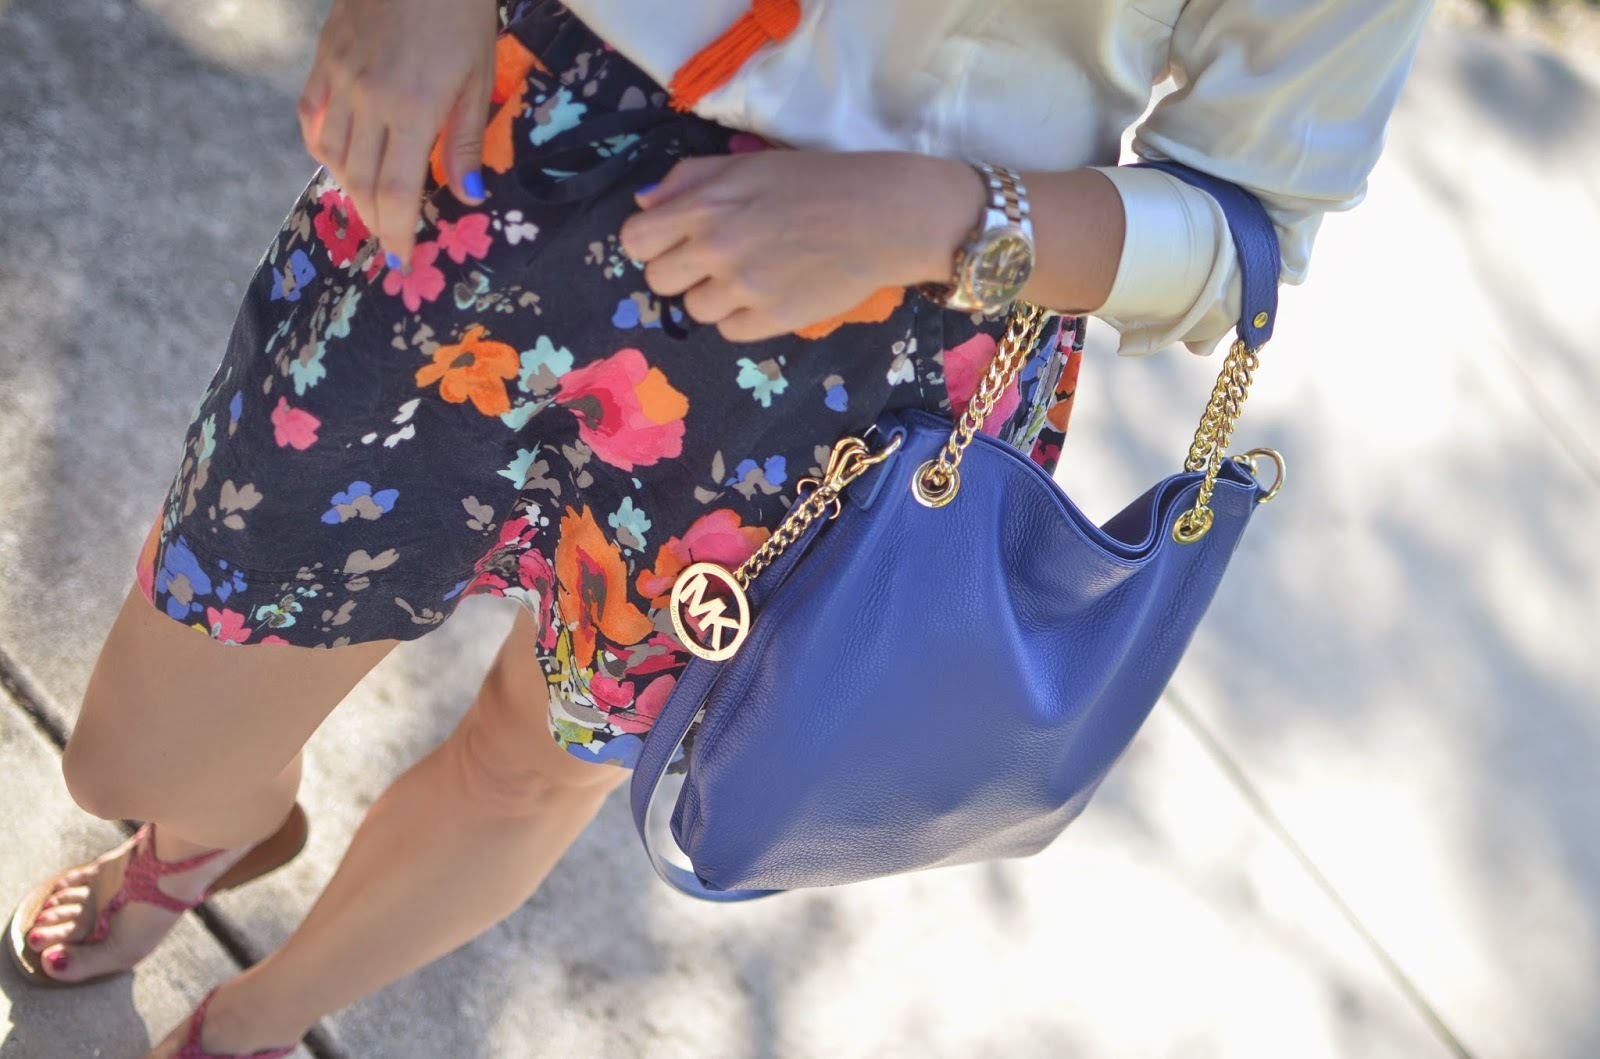 Floral skirt - silk top - tassel necklace - blue bag - pink sandals